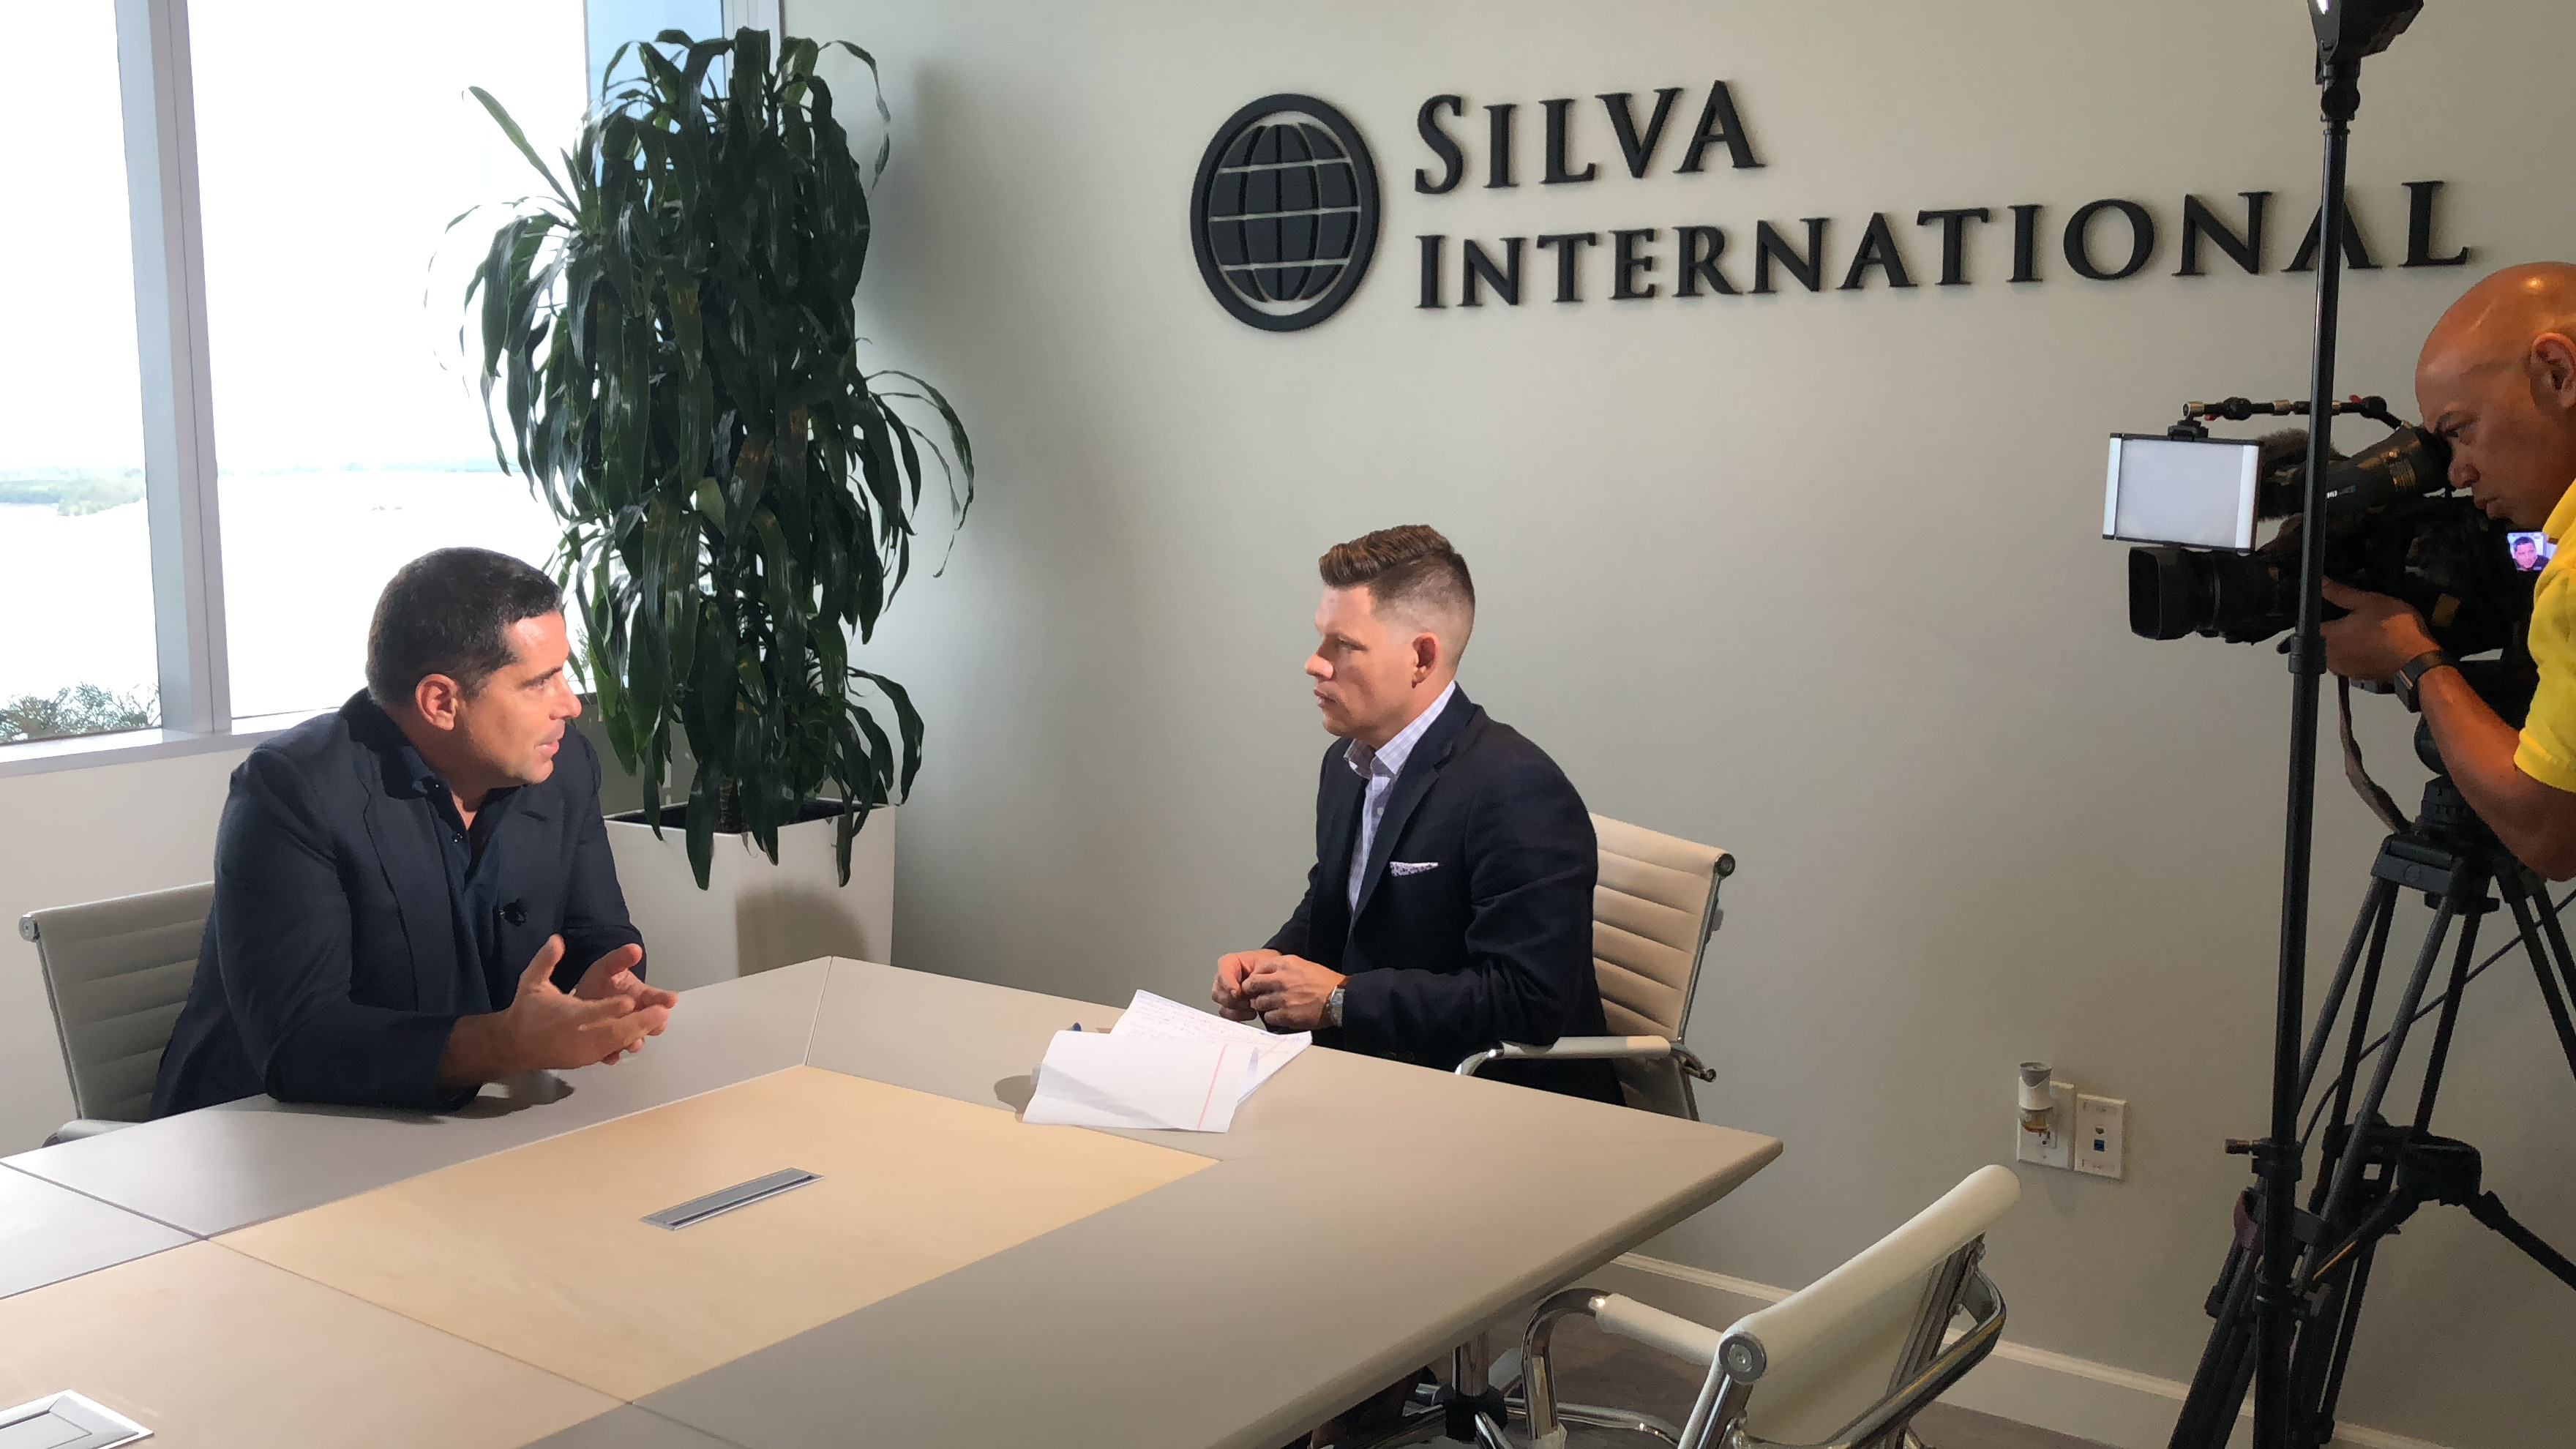 Riccardo Silva and NBC6's Chris Fisher discussing the current state of soccer in the US at the Silva International Investments office in Miami